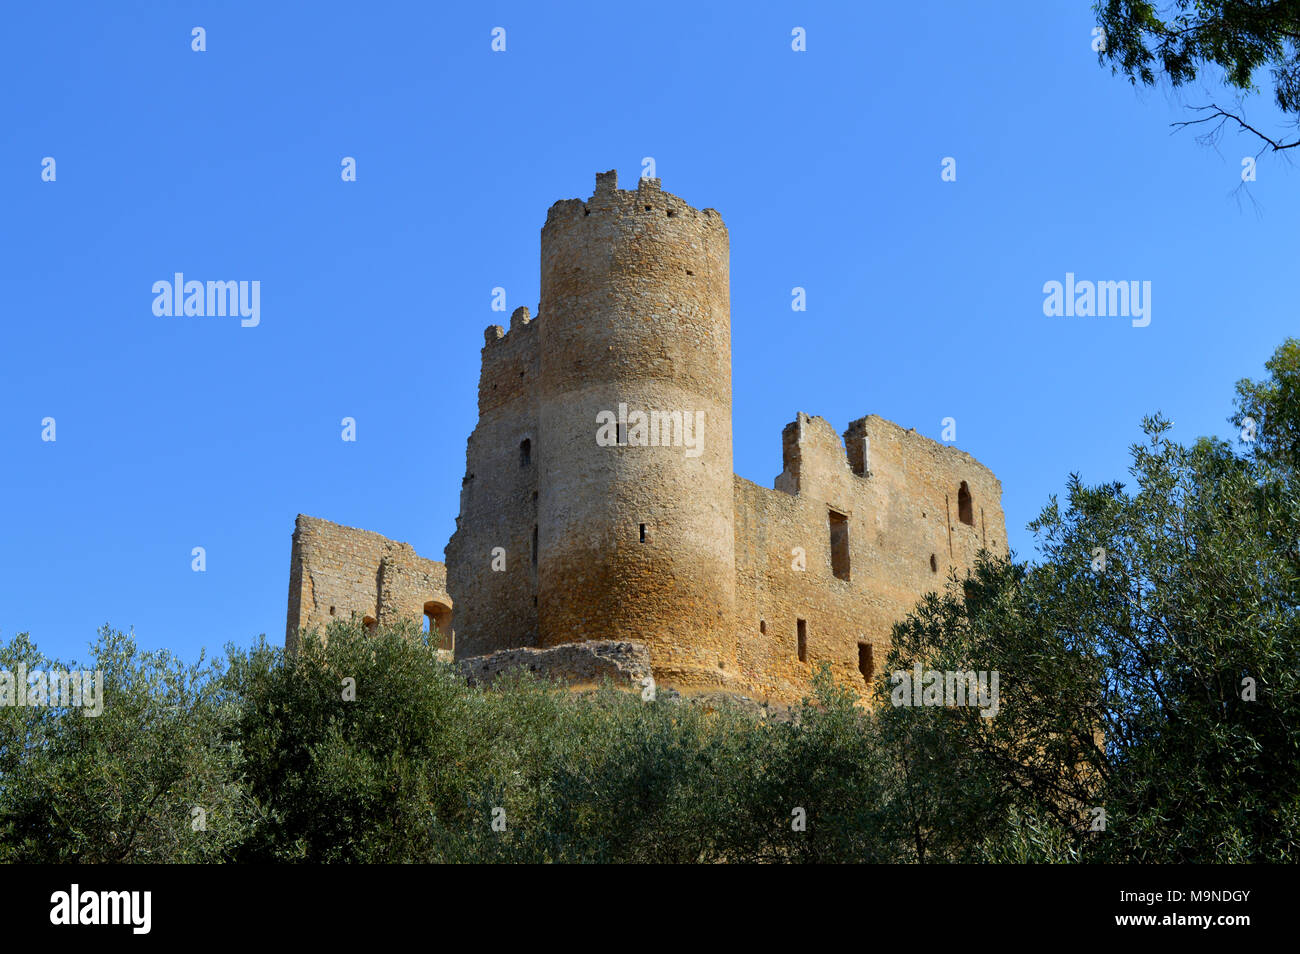 View of Mazzarino Medieval Castle with a Natural Frame, Caltanissetta, Sicily, Italy Stock Photo